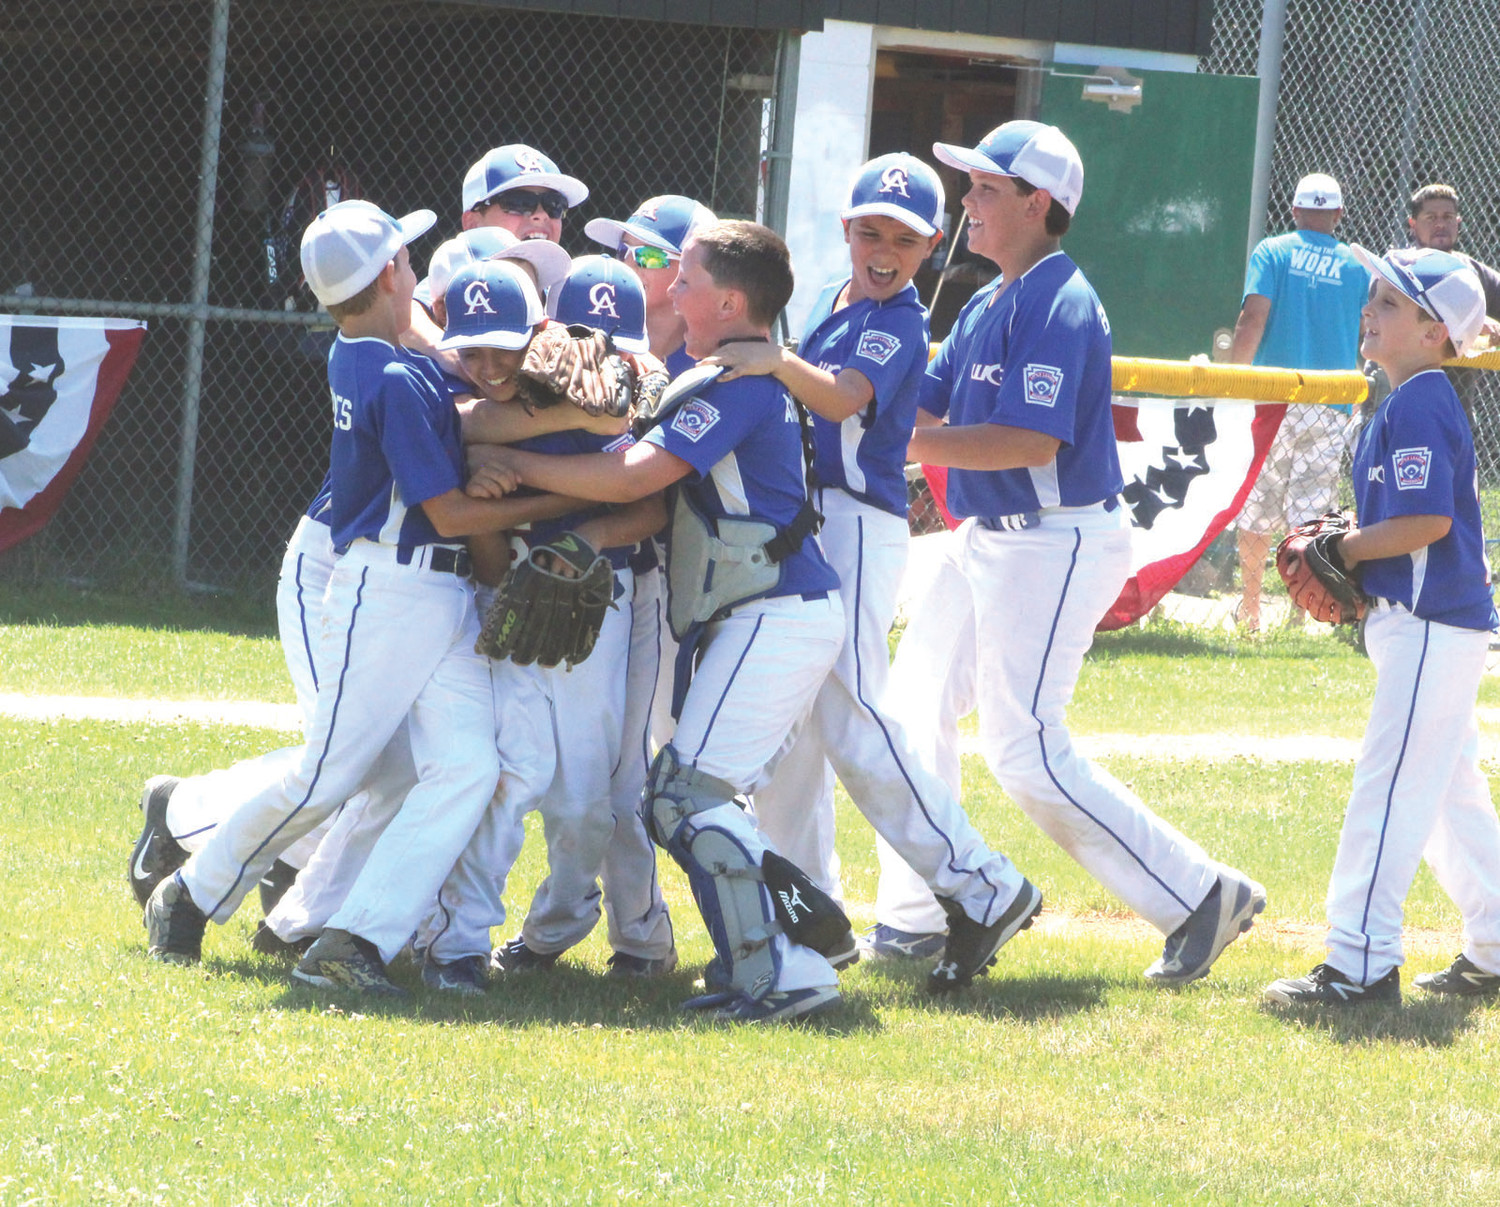 VICTORY LAP: The Warwick Continental American Little League team celebrates after winning the District 3 title.